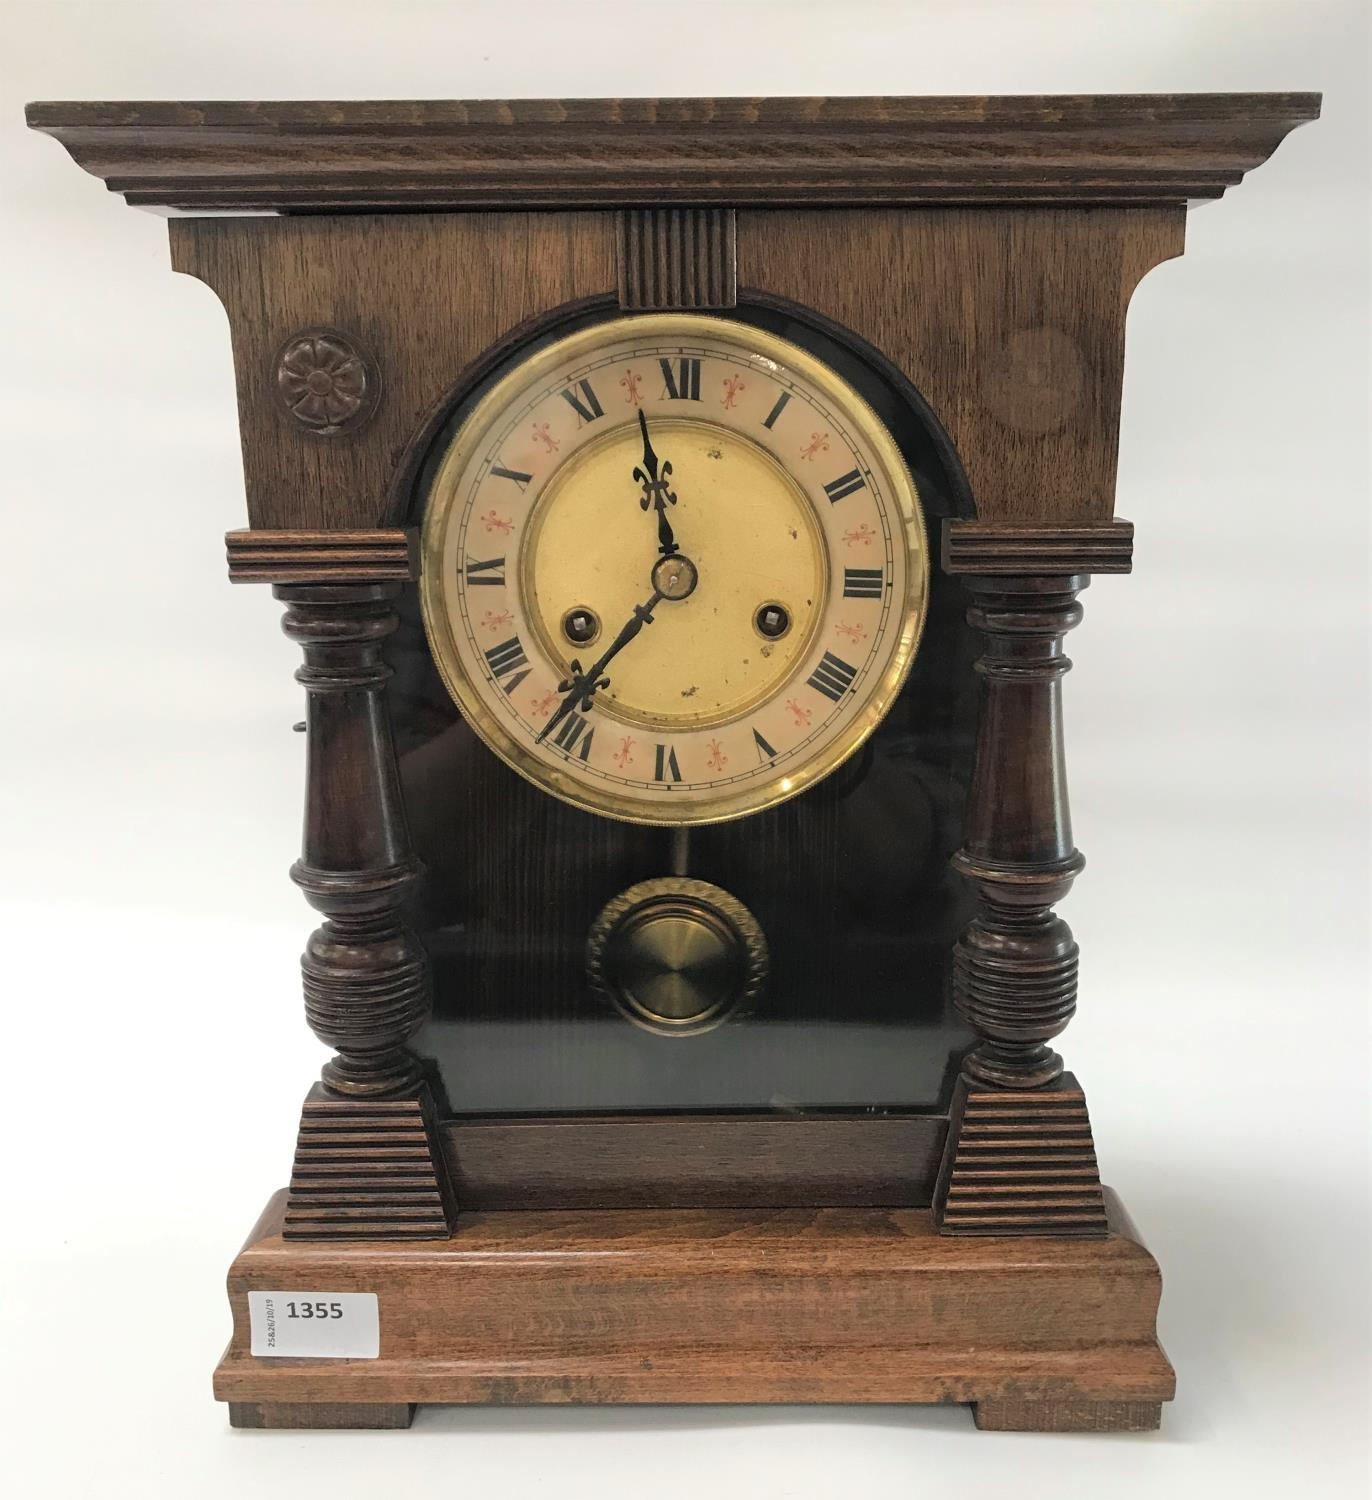 Lot 245 - GERMAN H.A.C. OAK MANTLE CLOCK with a circular dial with Roman numerals and an eight day movement,